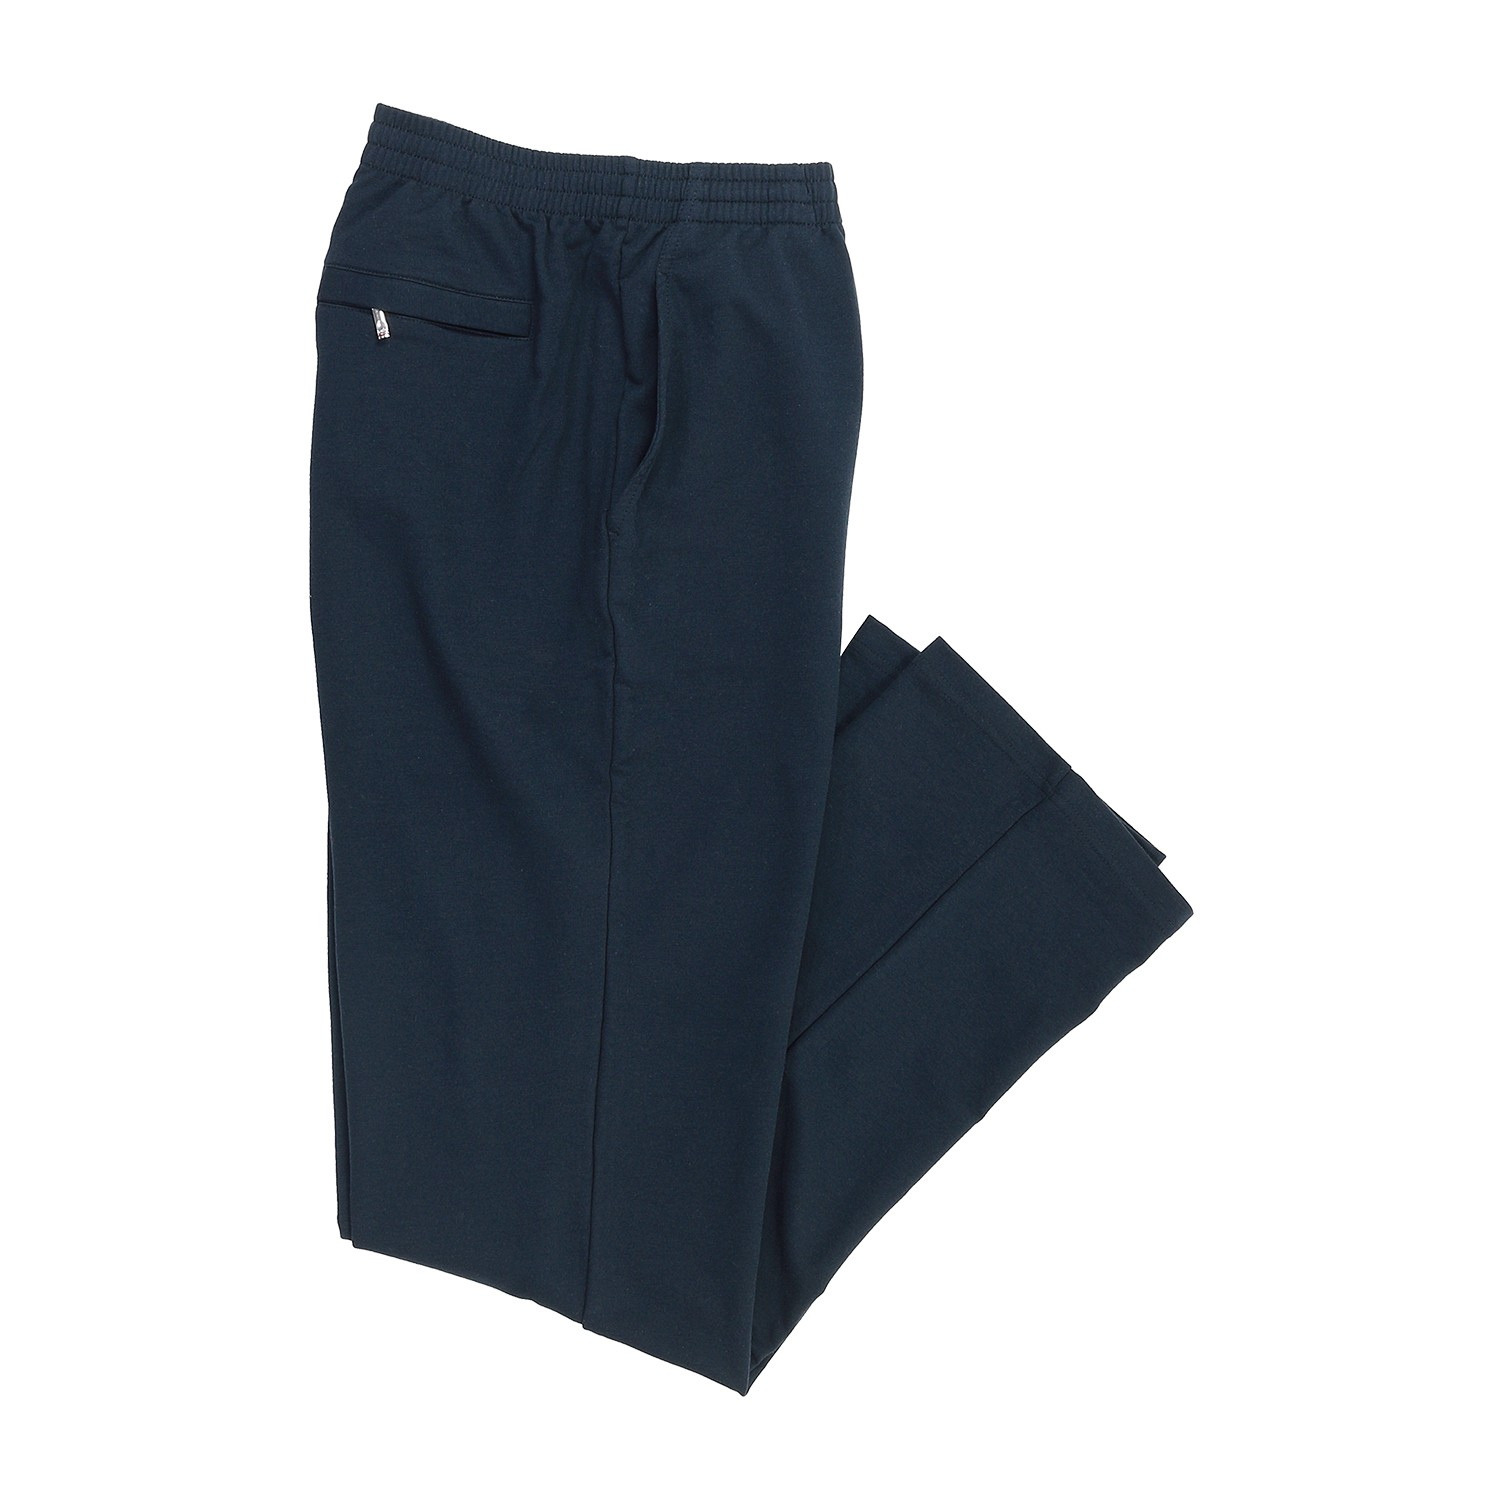 Detail Image to Blue sweat pants by hajo in plus sizes up to 6XL